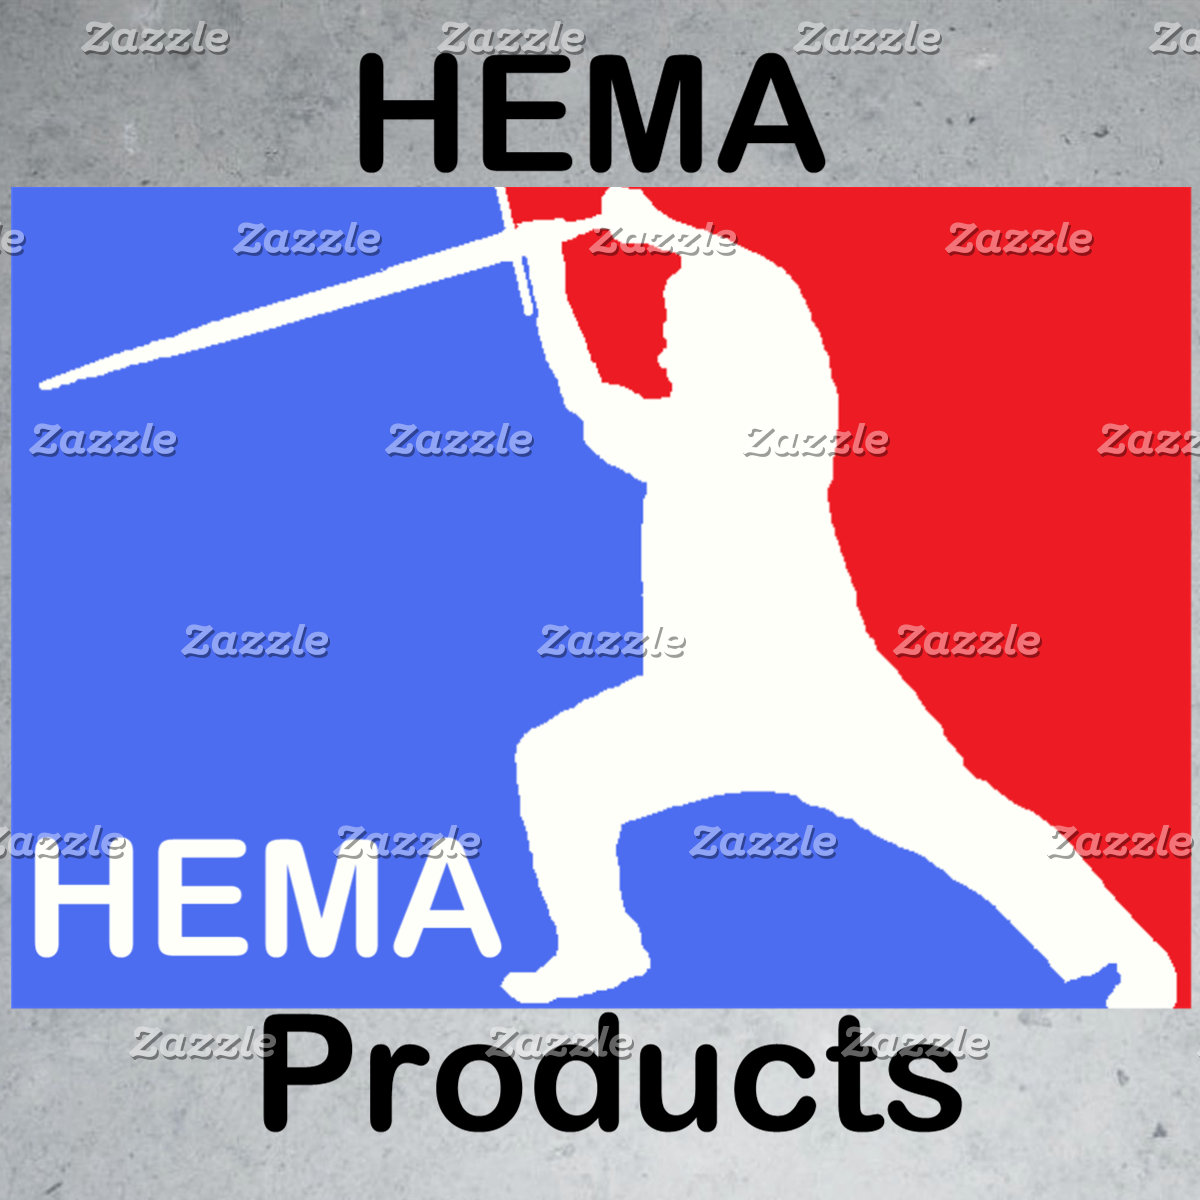 HEMA Products